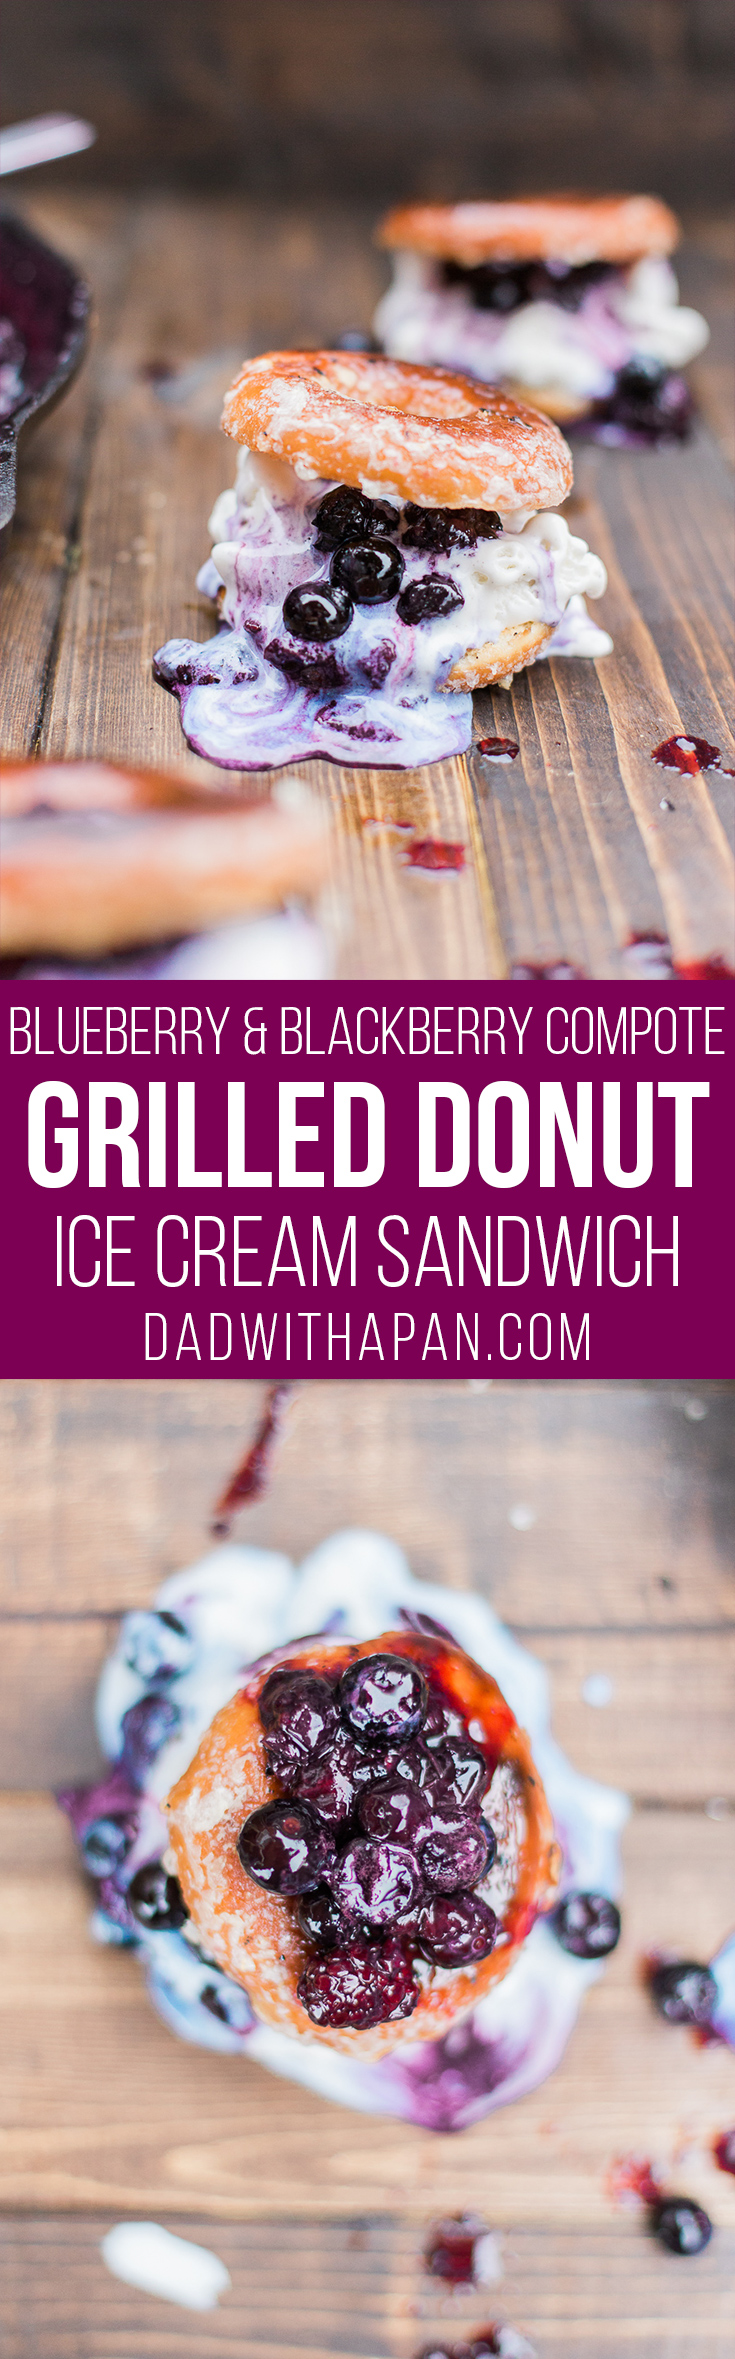 Grilled Donut Ice Cream Sandwich with a warm Blackberry BlueBerry Sauce #Dessert #Donuts #Grilled